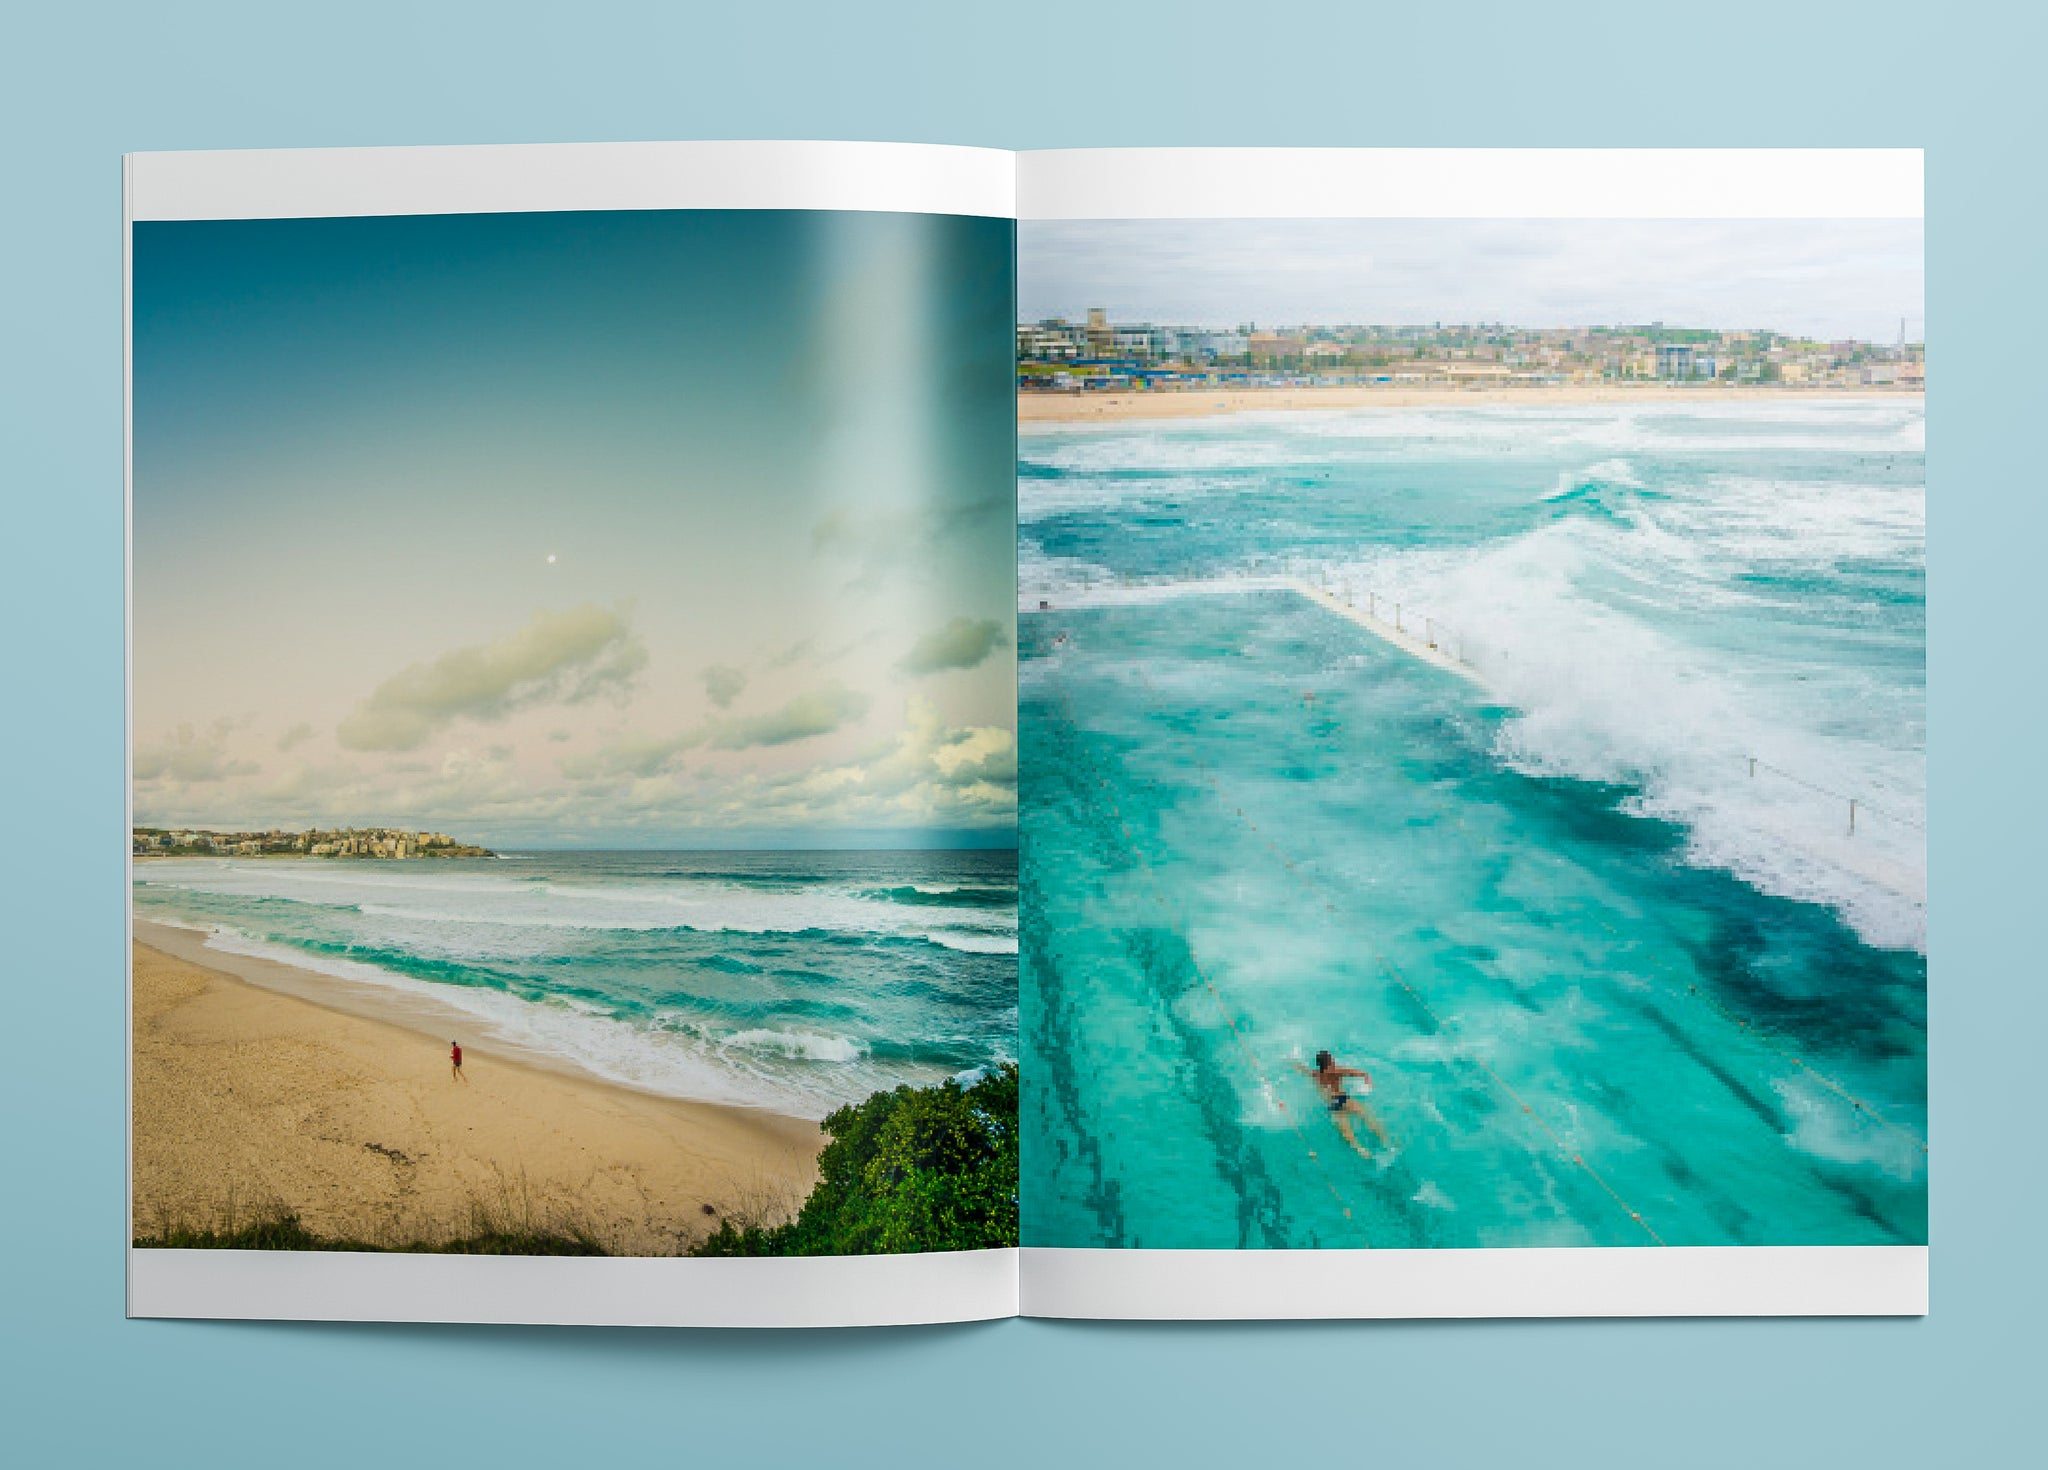 Cuba Gallery Travel and landscape photography Book